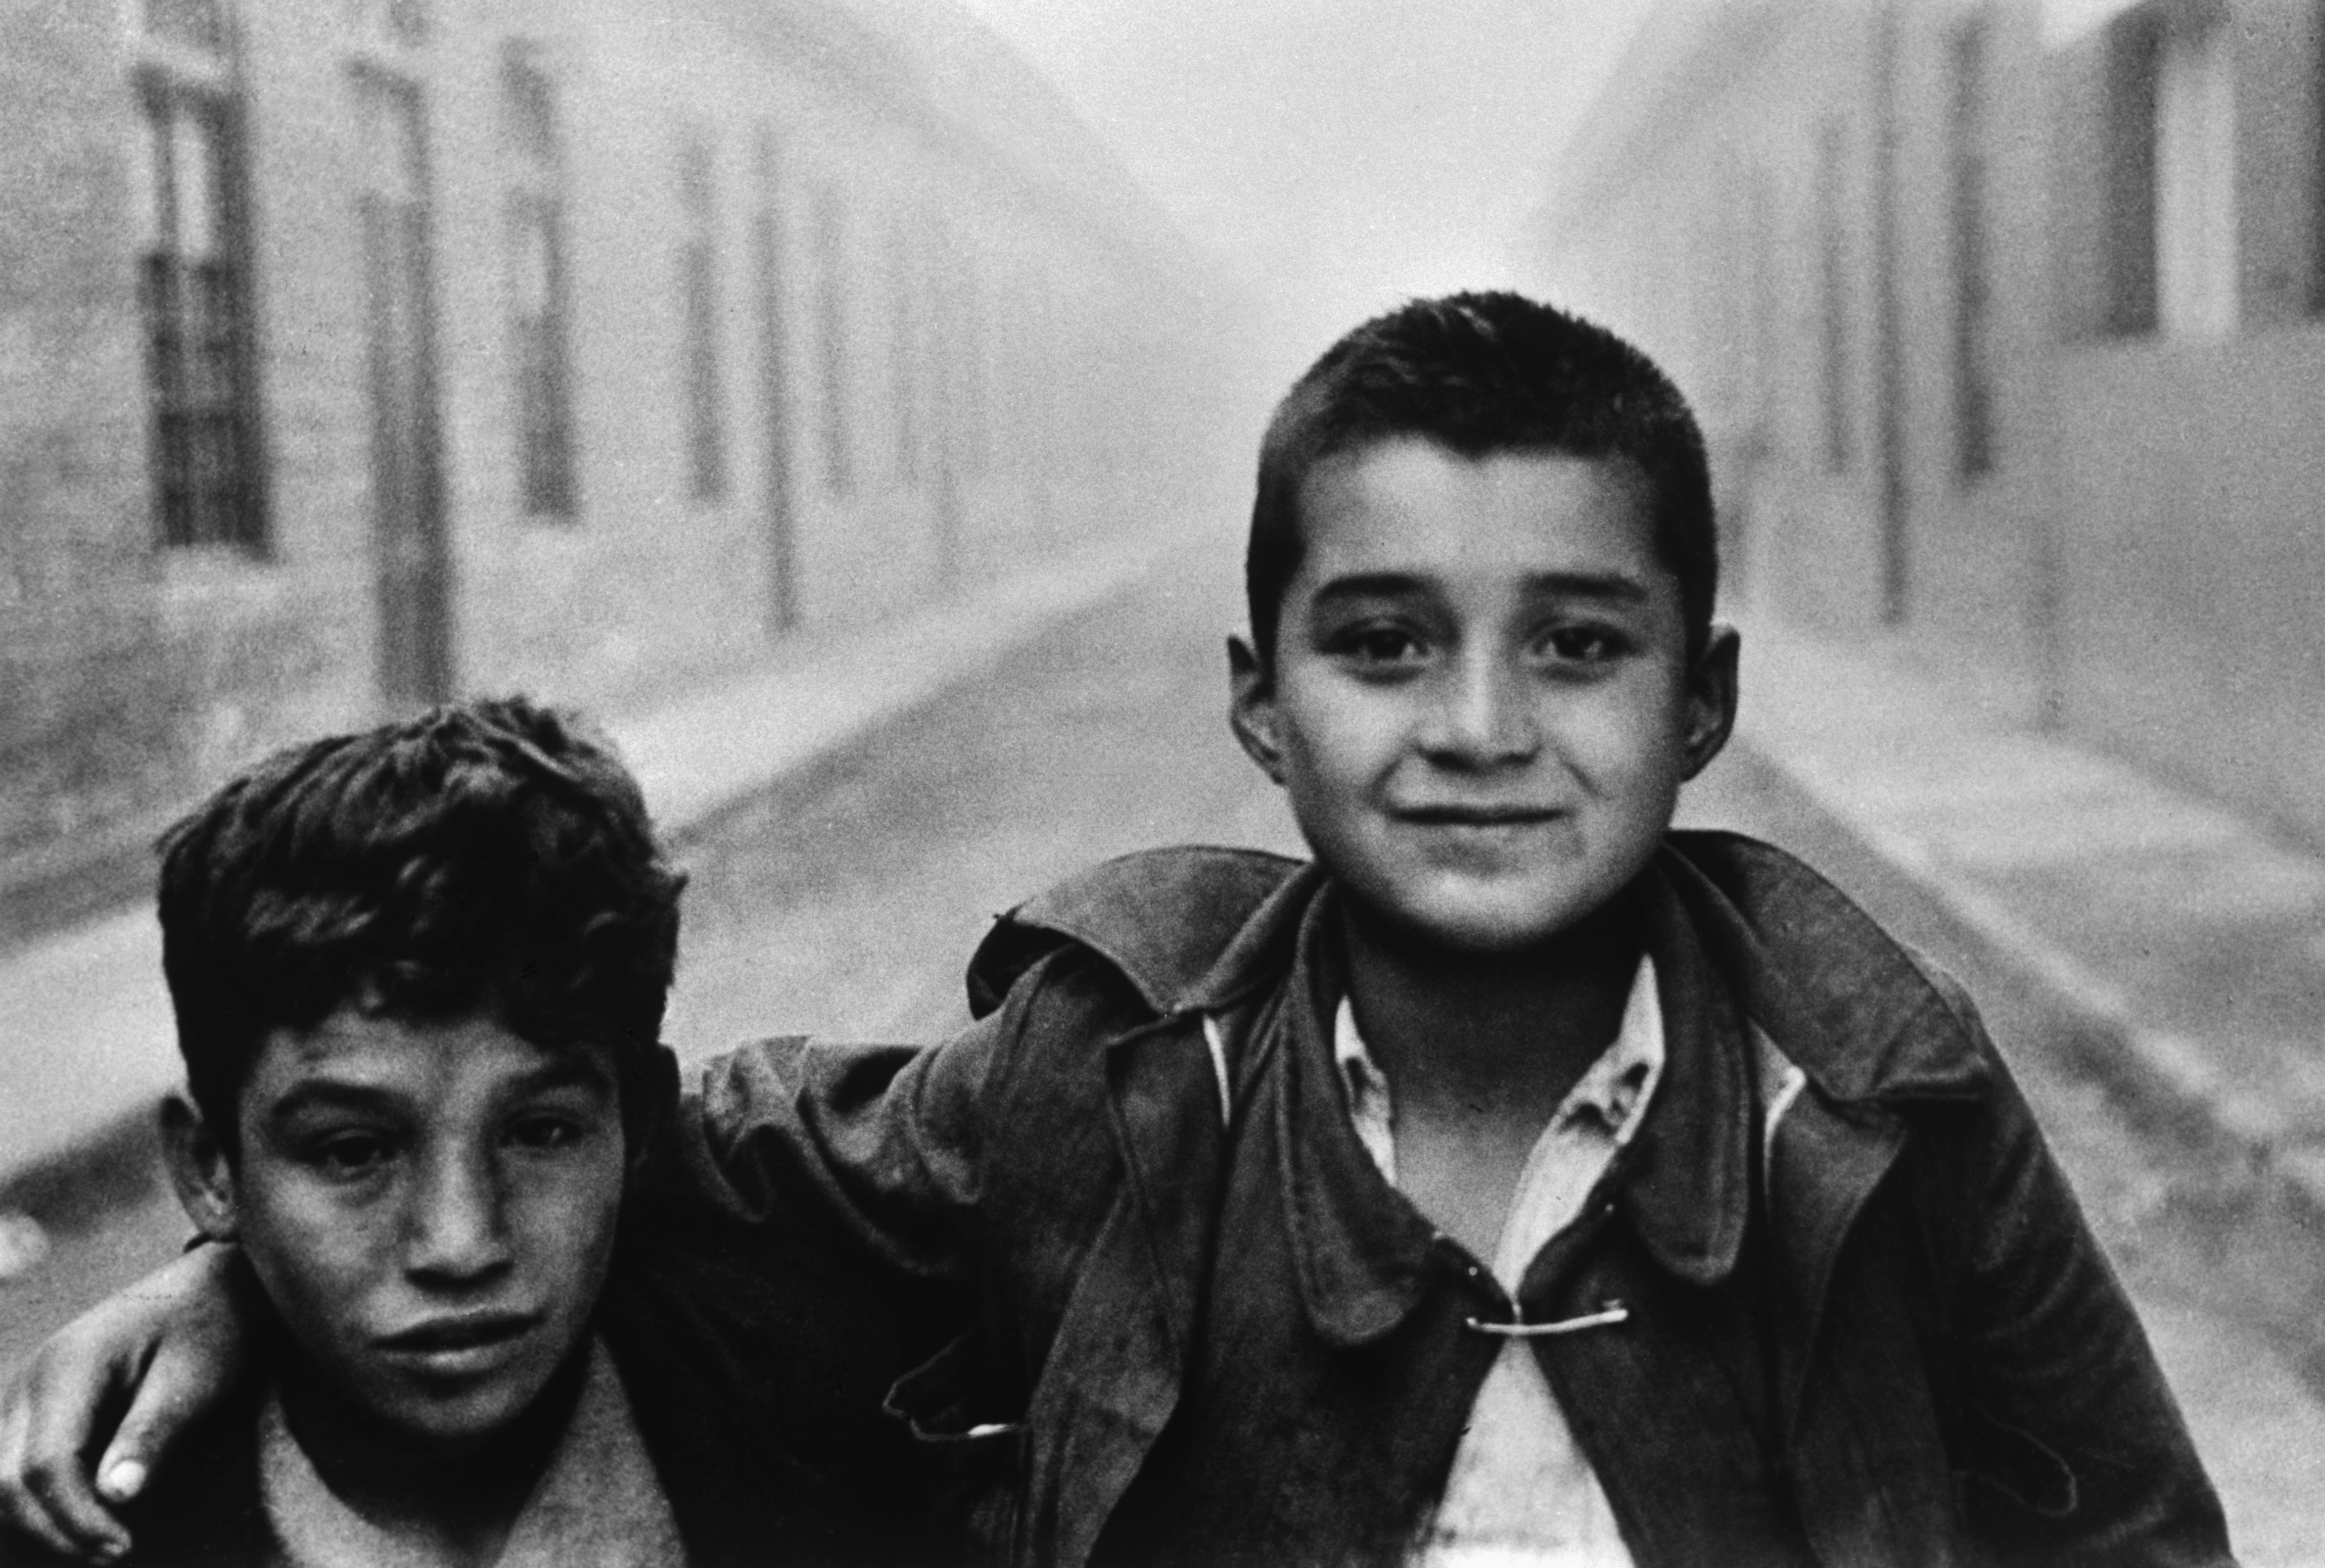 Life on the Streets: Sergio Larrain at Rencontres | Time.com